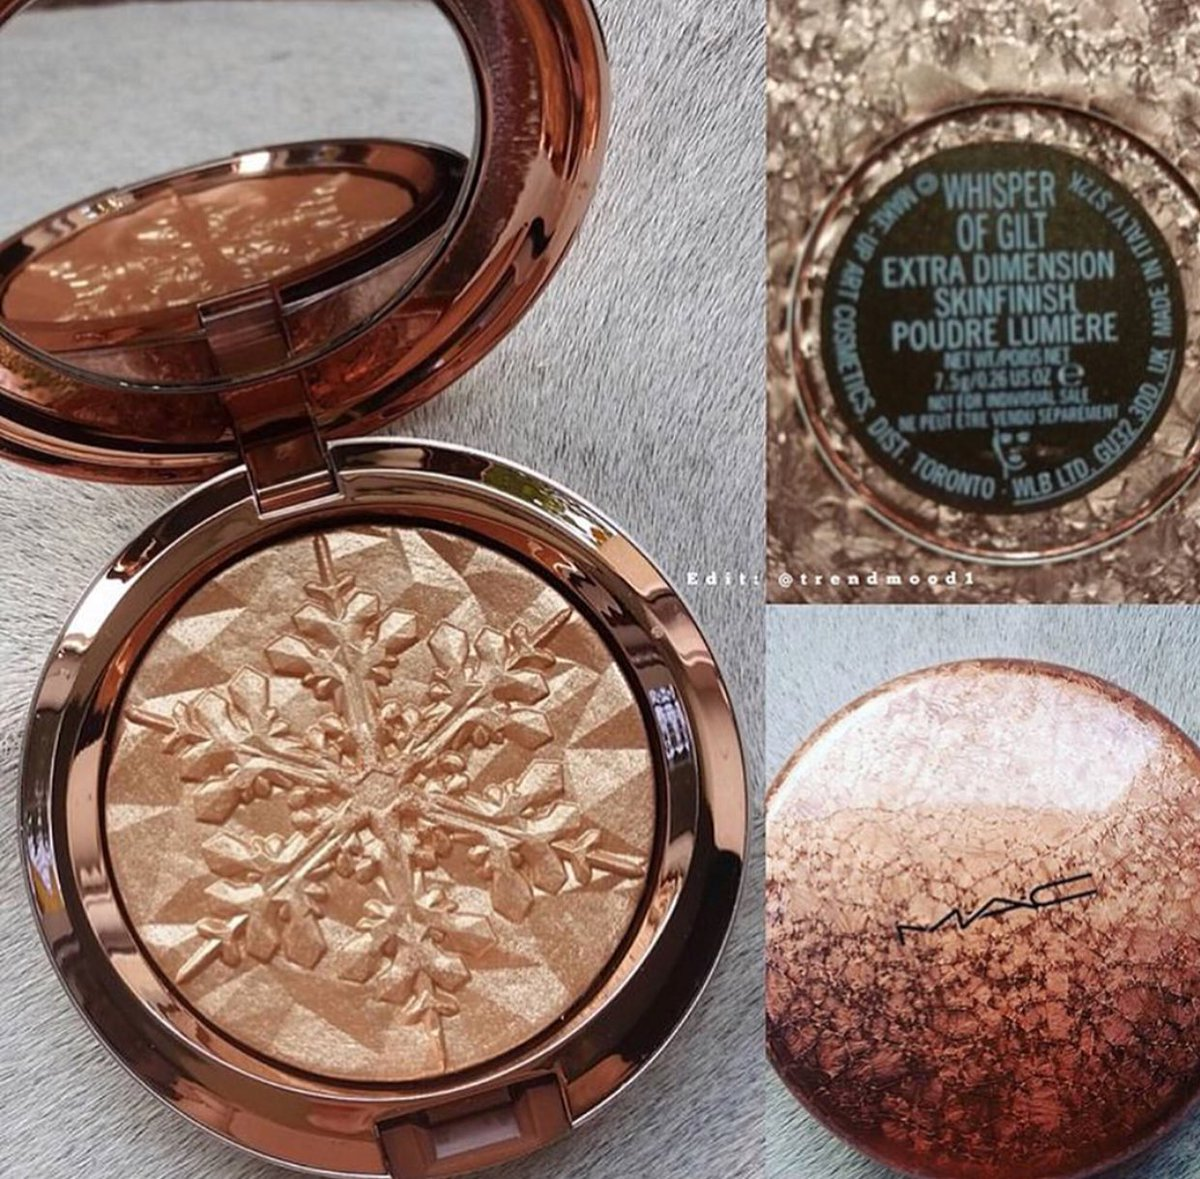 Buckle Up NEW @MACcosmetics #WhisperOfGilt Highlighter in a special compact! Will be available soon!  #Holidays  @andreeagheara <br>http://pic.twitter.com/zIhLFbi69x